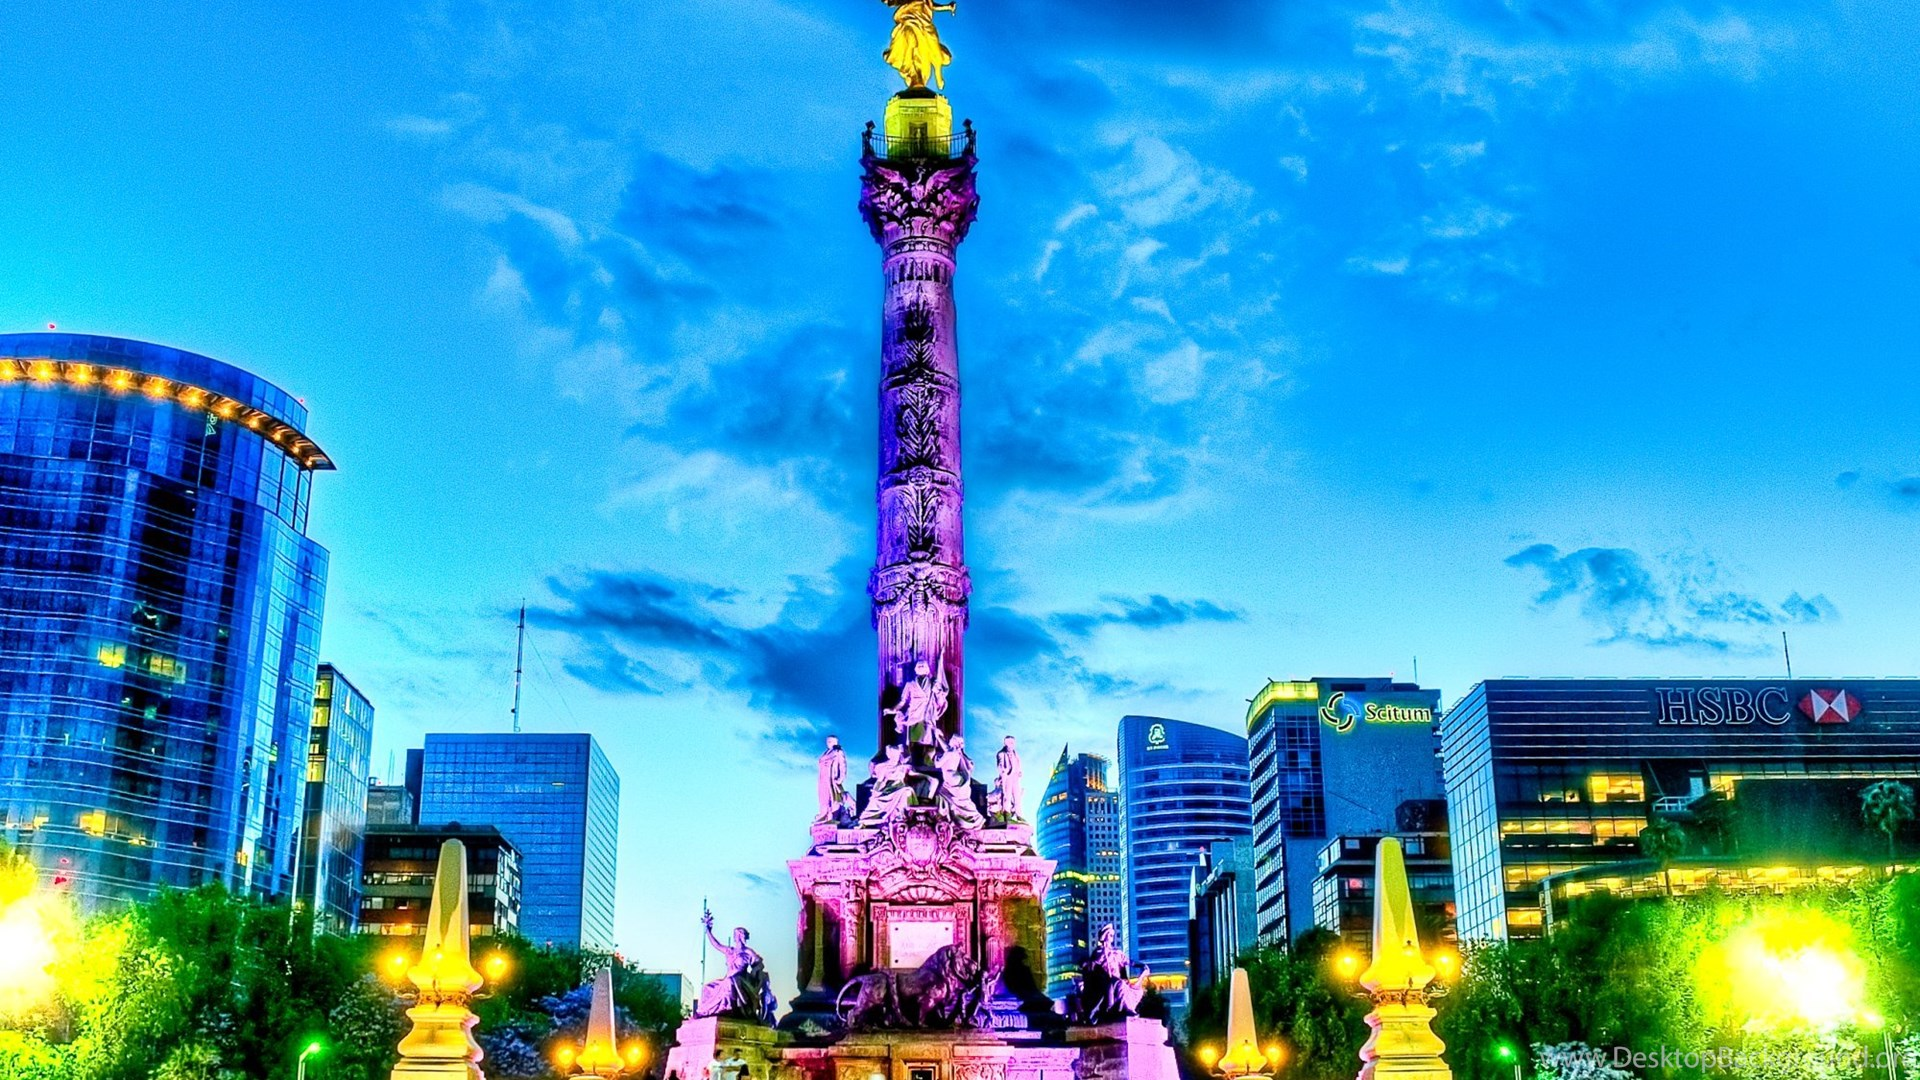 Iphone X Live 1920x1080 Wallpapers Quality Mexico City Wallpapers Cities Desktop Background